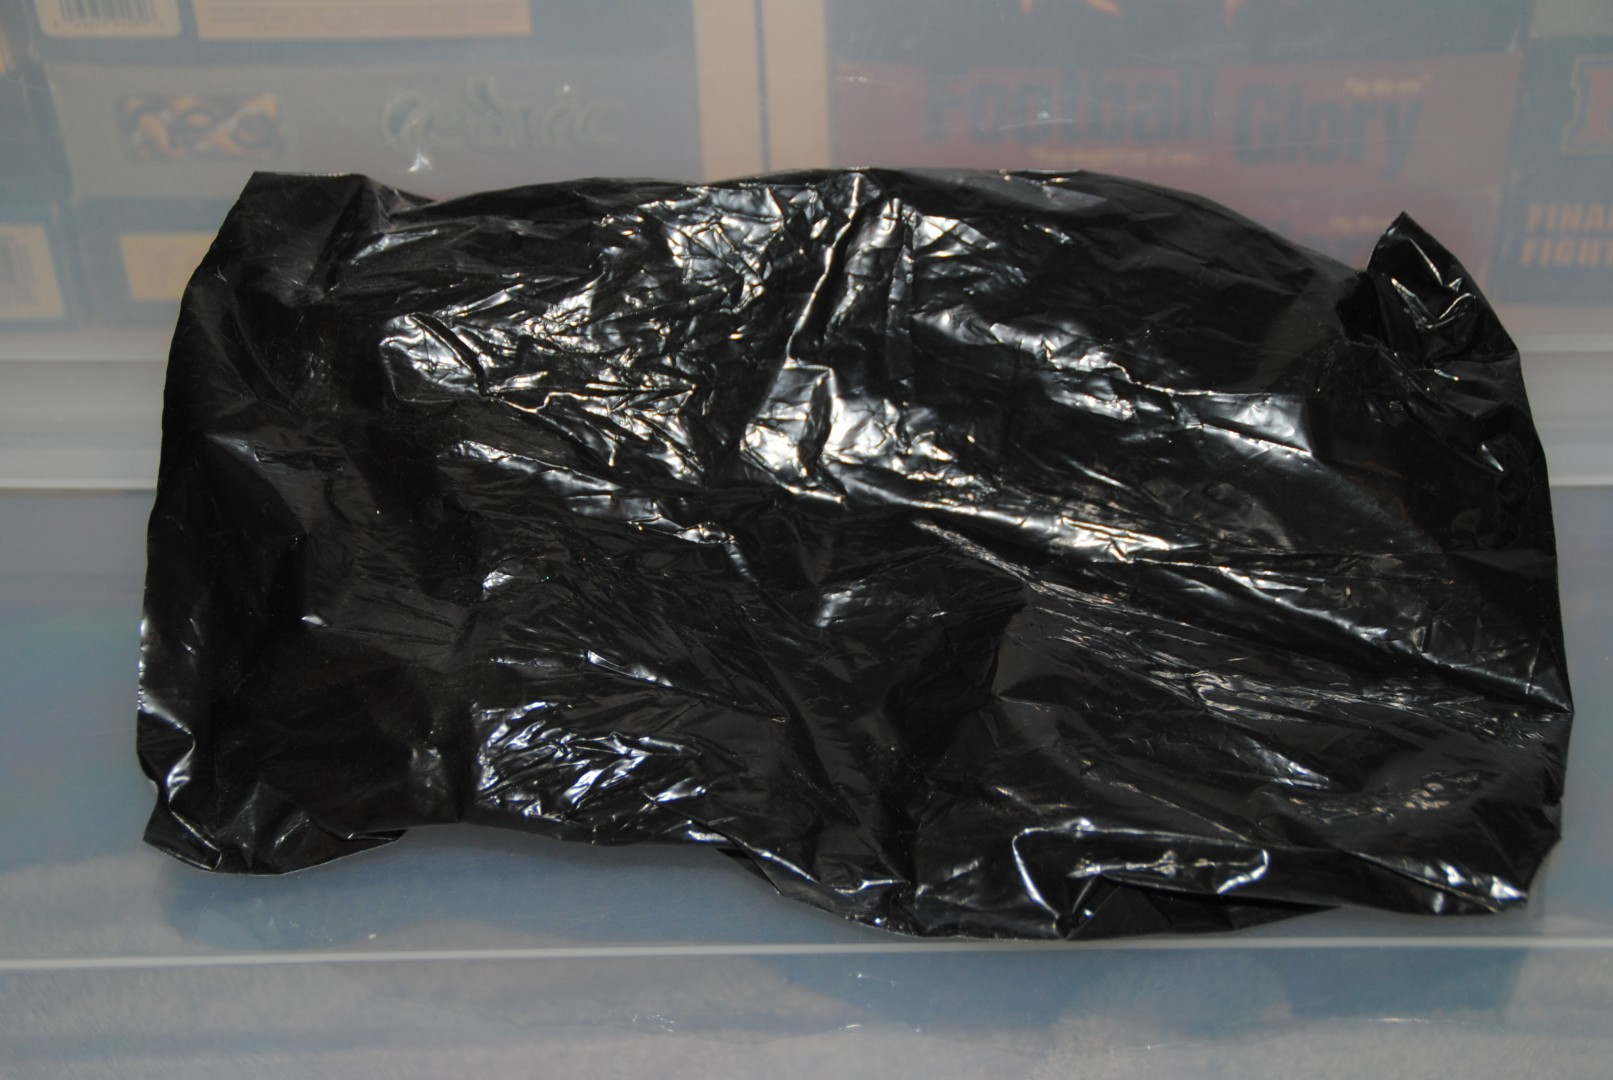 Body Bag , what was inside it?